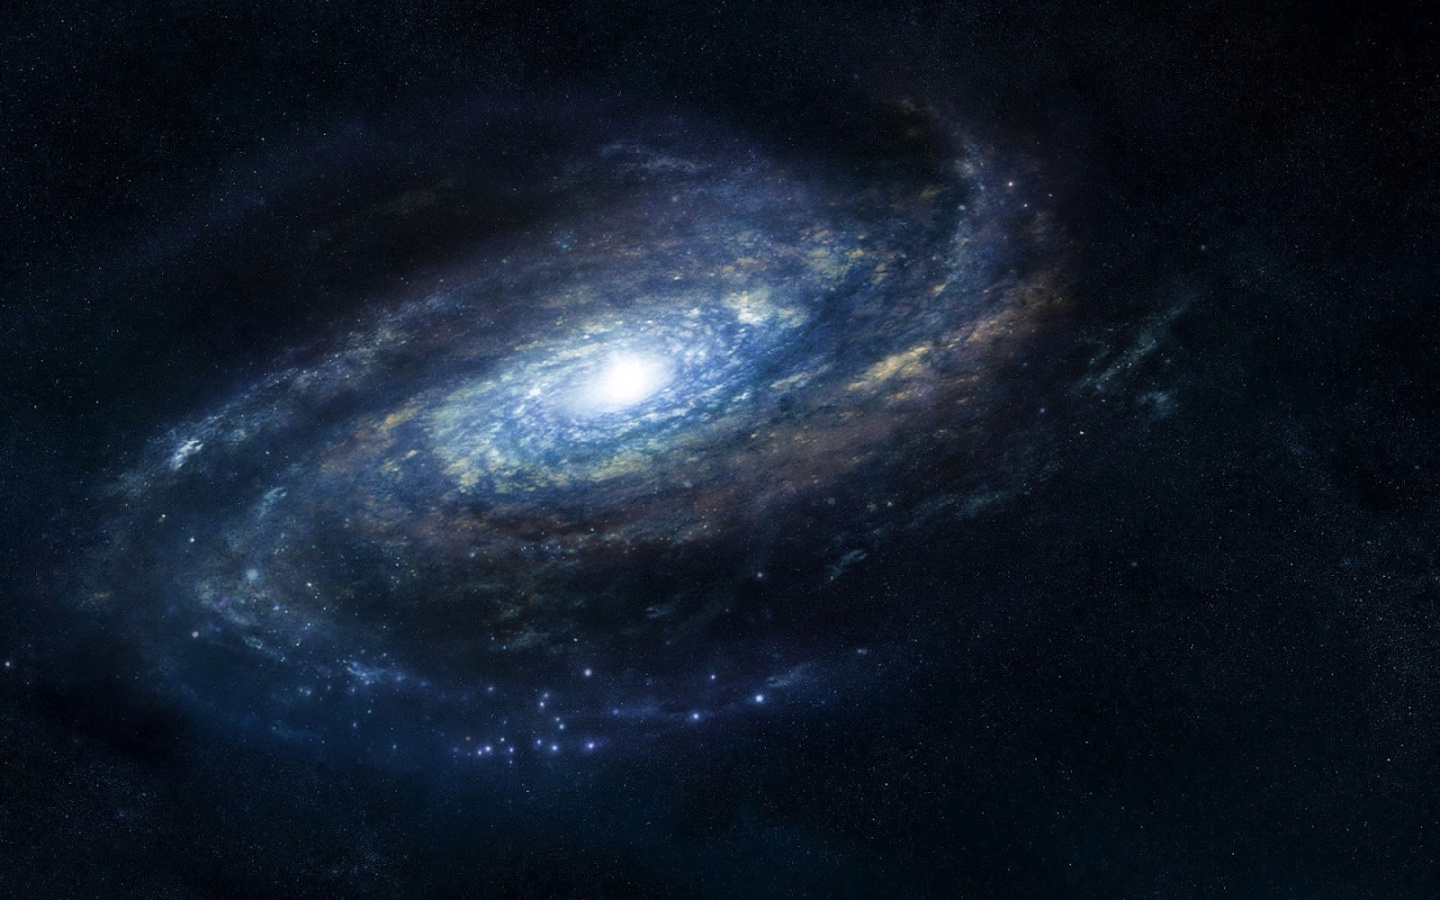 Space blue galaxy wallpapers 1440x900 421354 - Blue space galaxy wallpaper ...